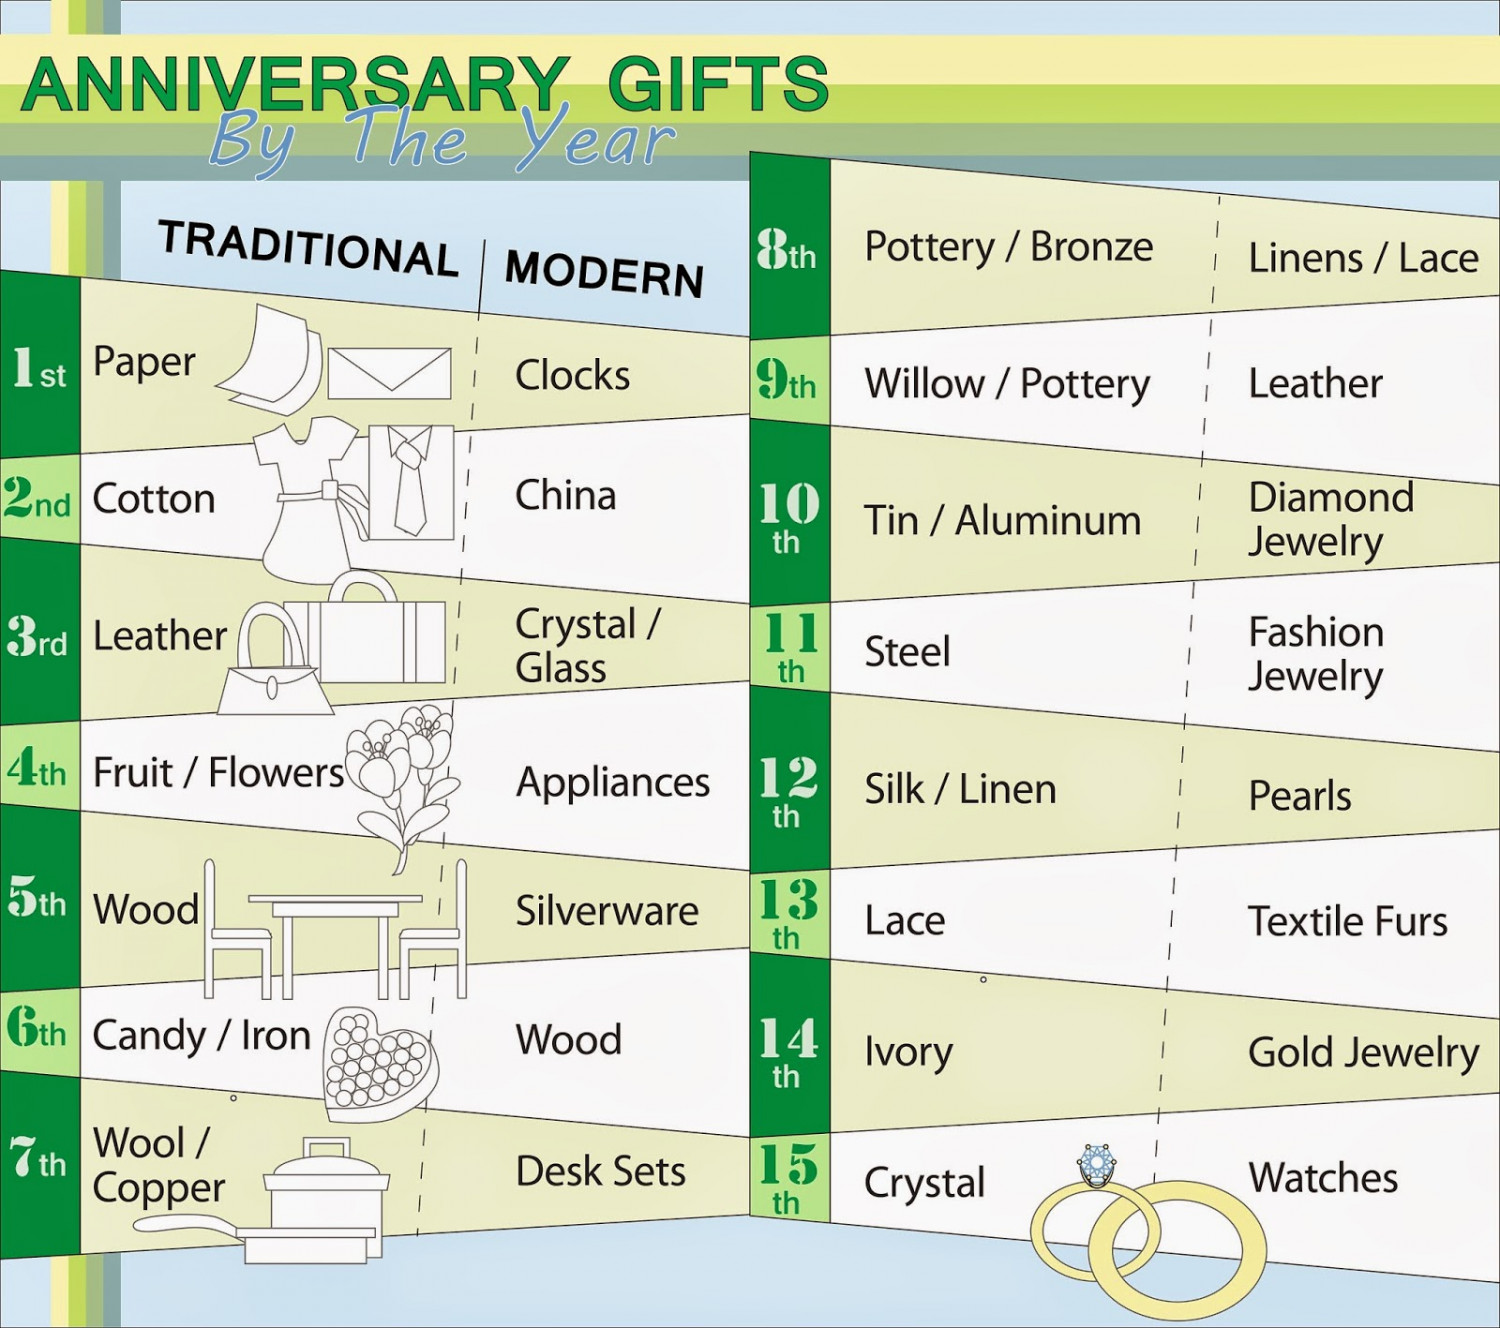 Wedding Gifts by Year Infographic